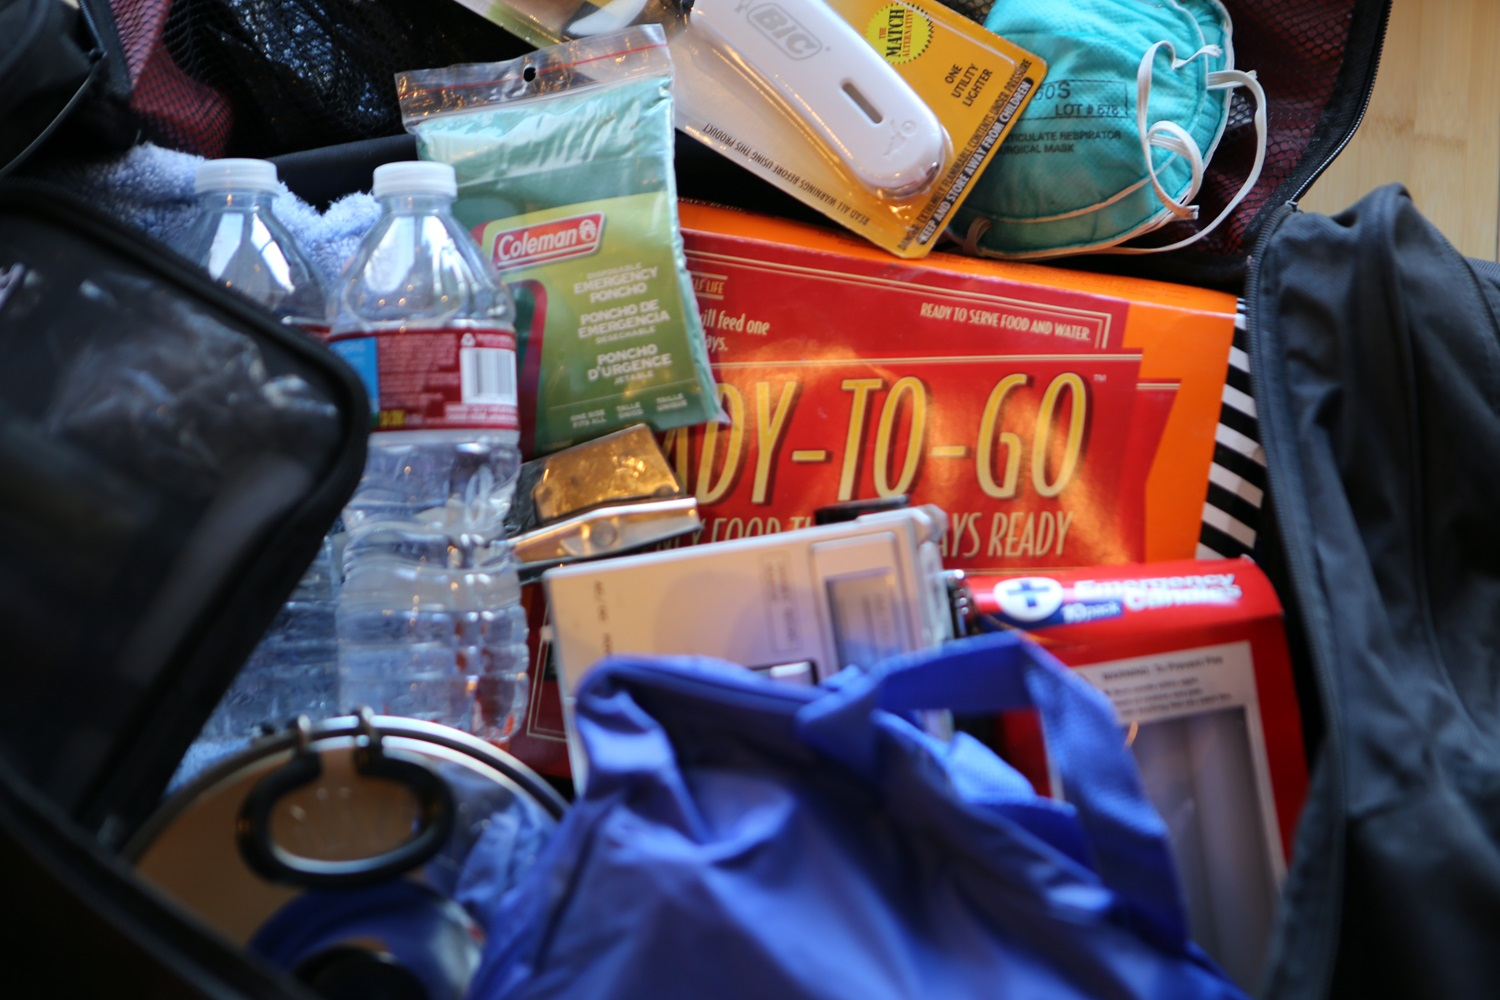 A Complete Bug Out Bag List